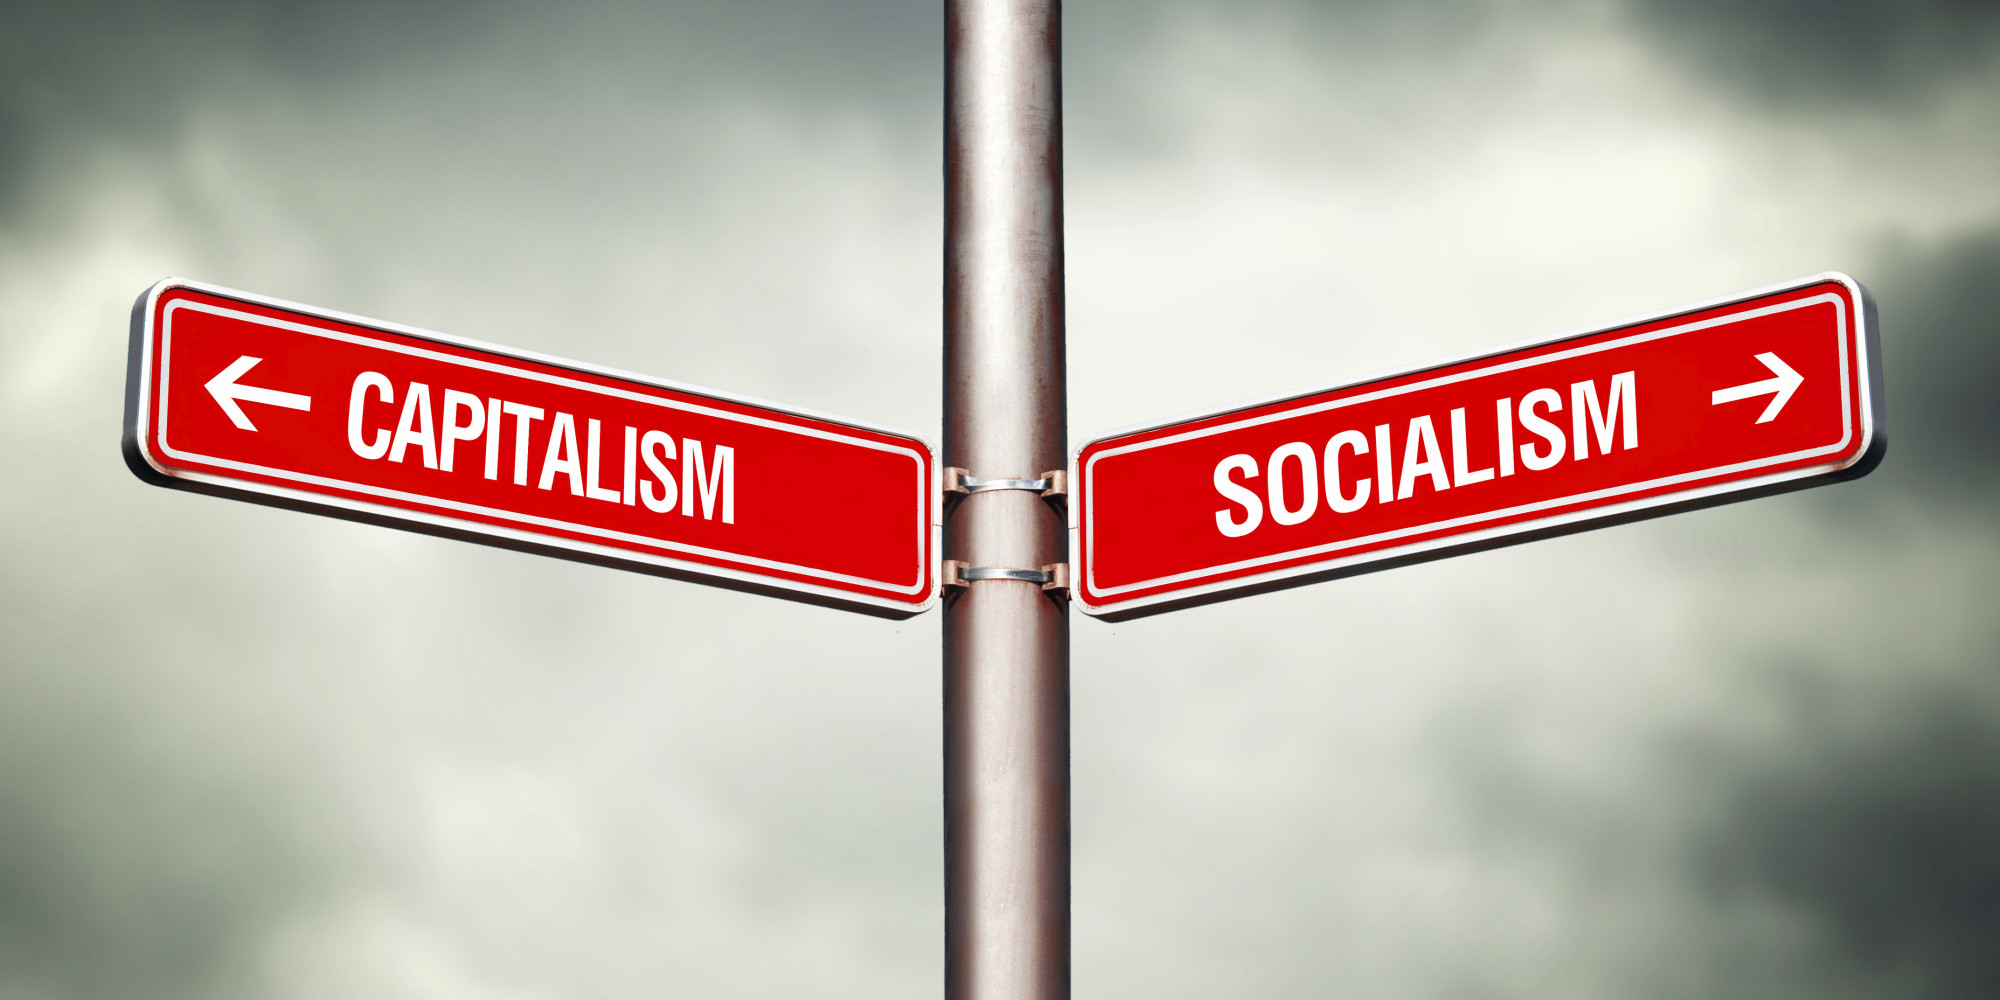 Capitalism v socialism direction